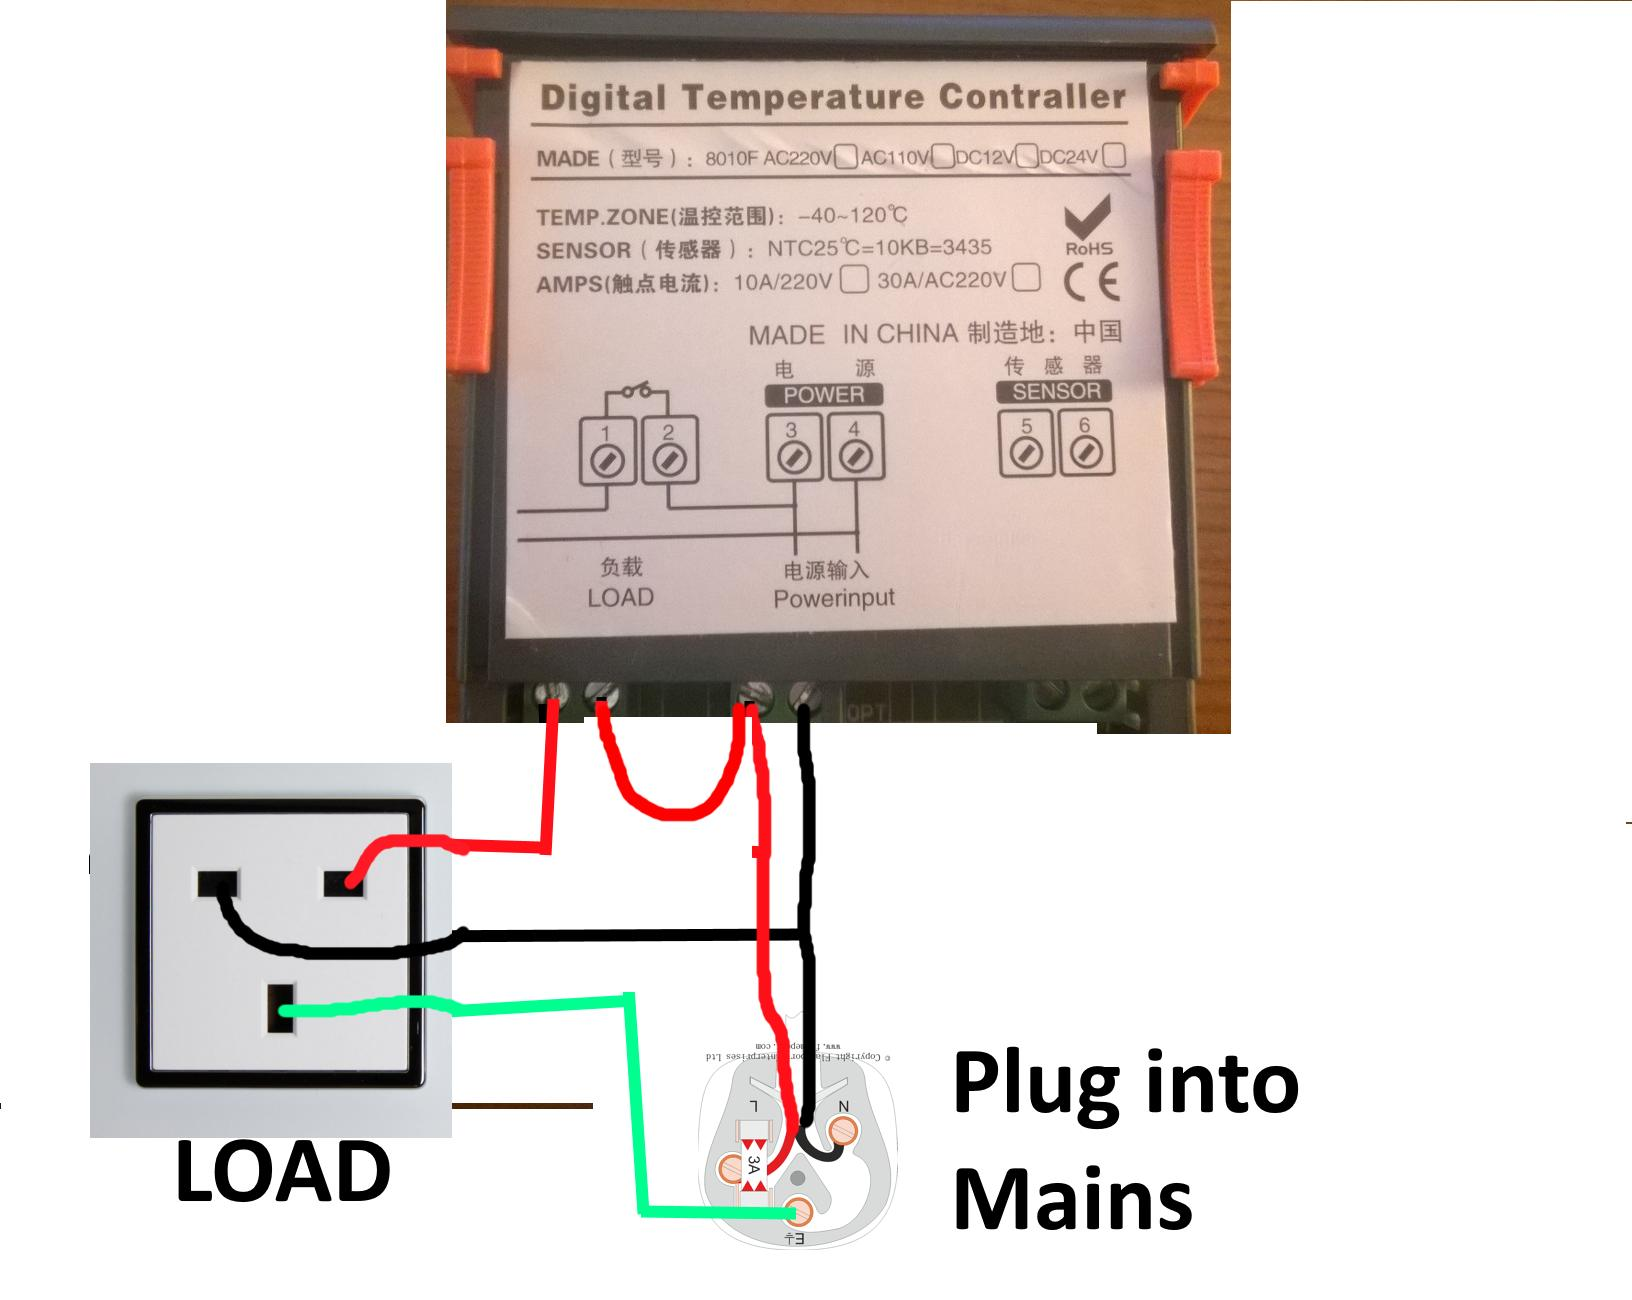 hight resolution of temperature controller manual ranco temperature controller wiringranco 8145 wiring diagram wiring diagram ranco wiring diagrams wiring